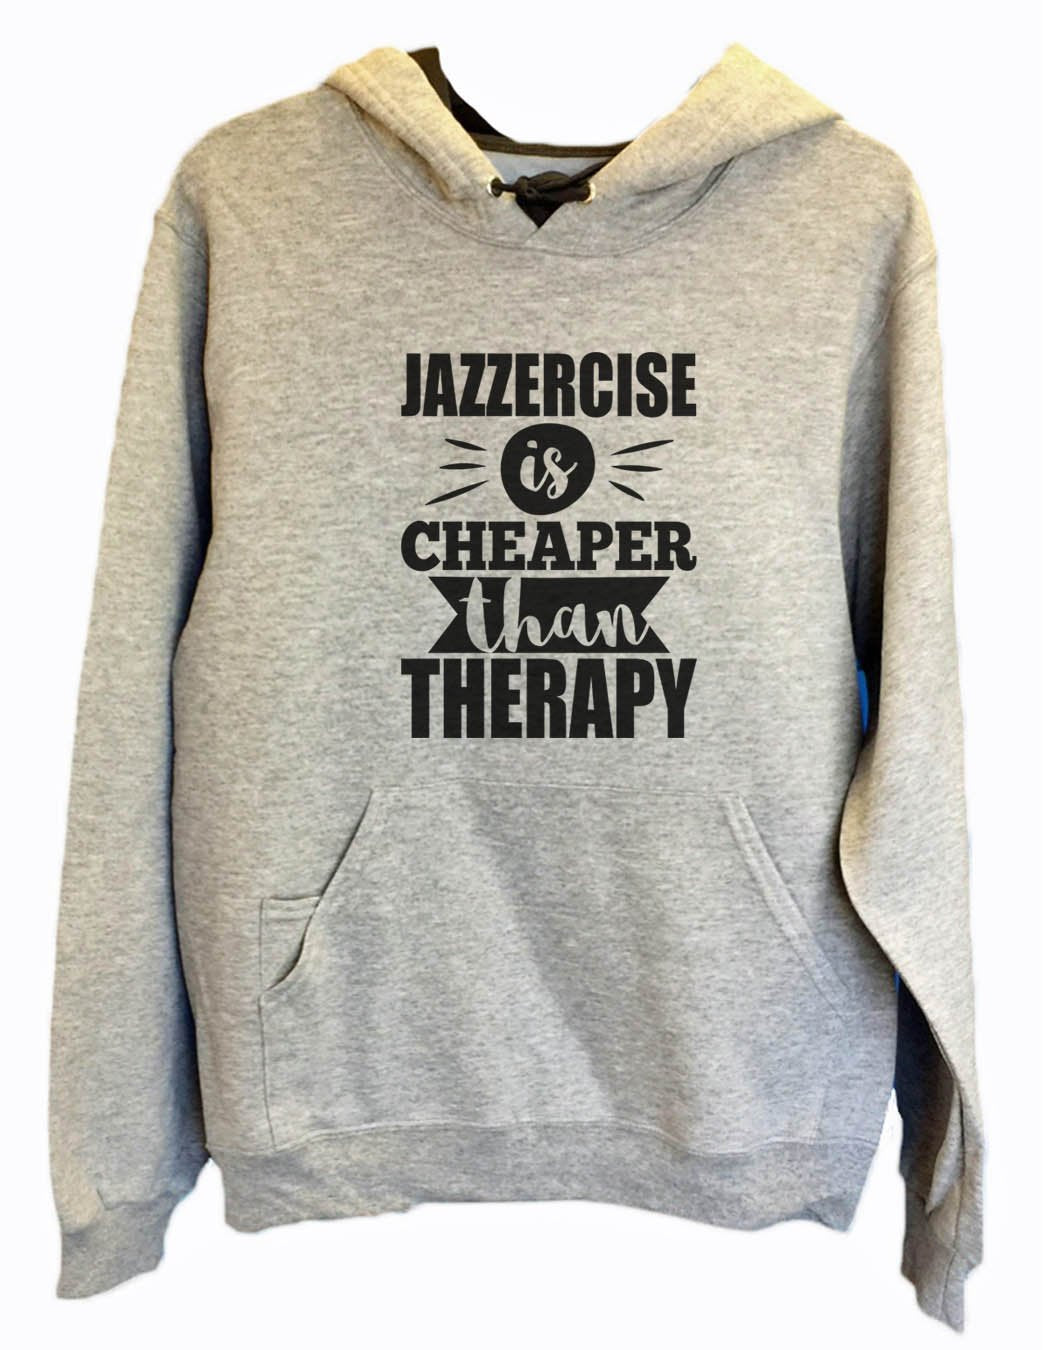 UNISEX HOODIE - Jazzercise Is Cheaper Than Therapy - FUNNY MENS AND WOMENS HOODED SWEATSHIRTS - 2131 Funny Shirt